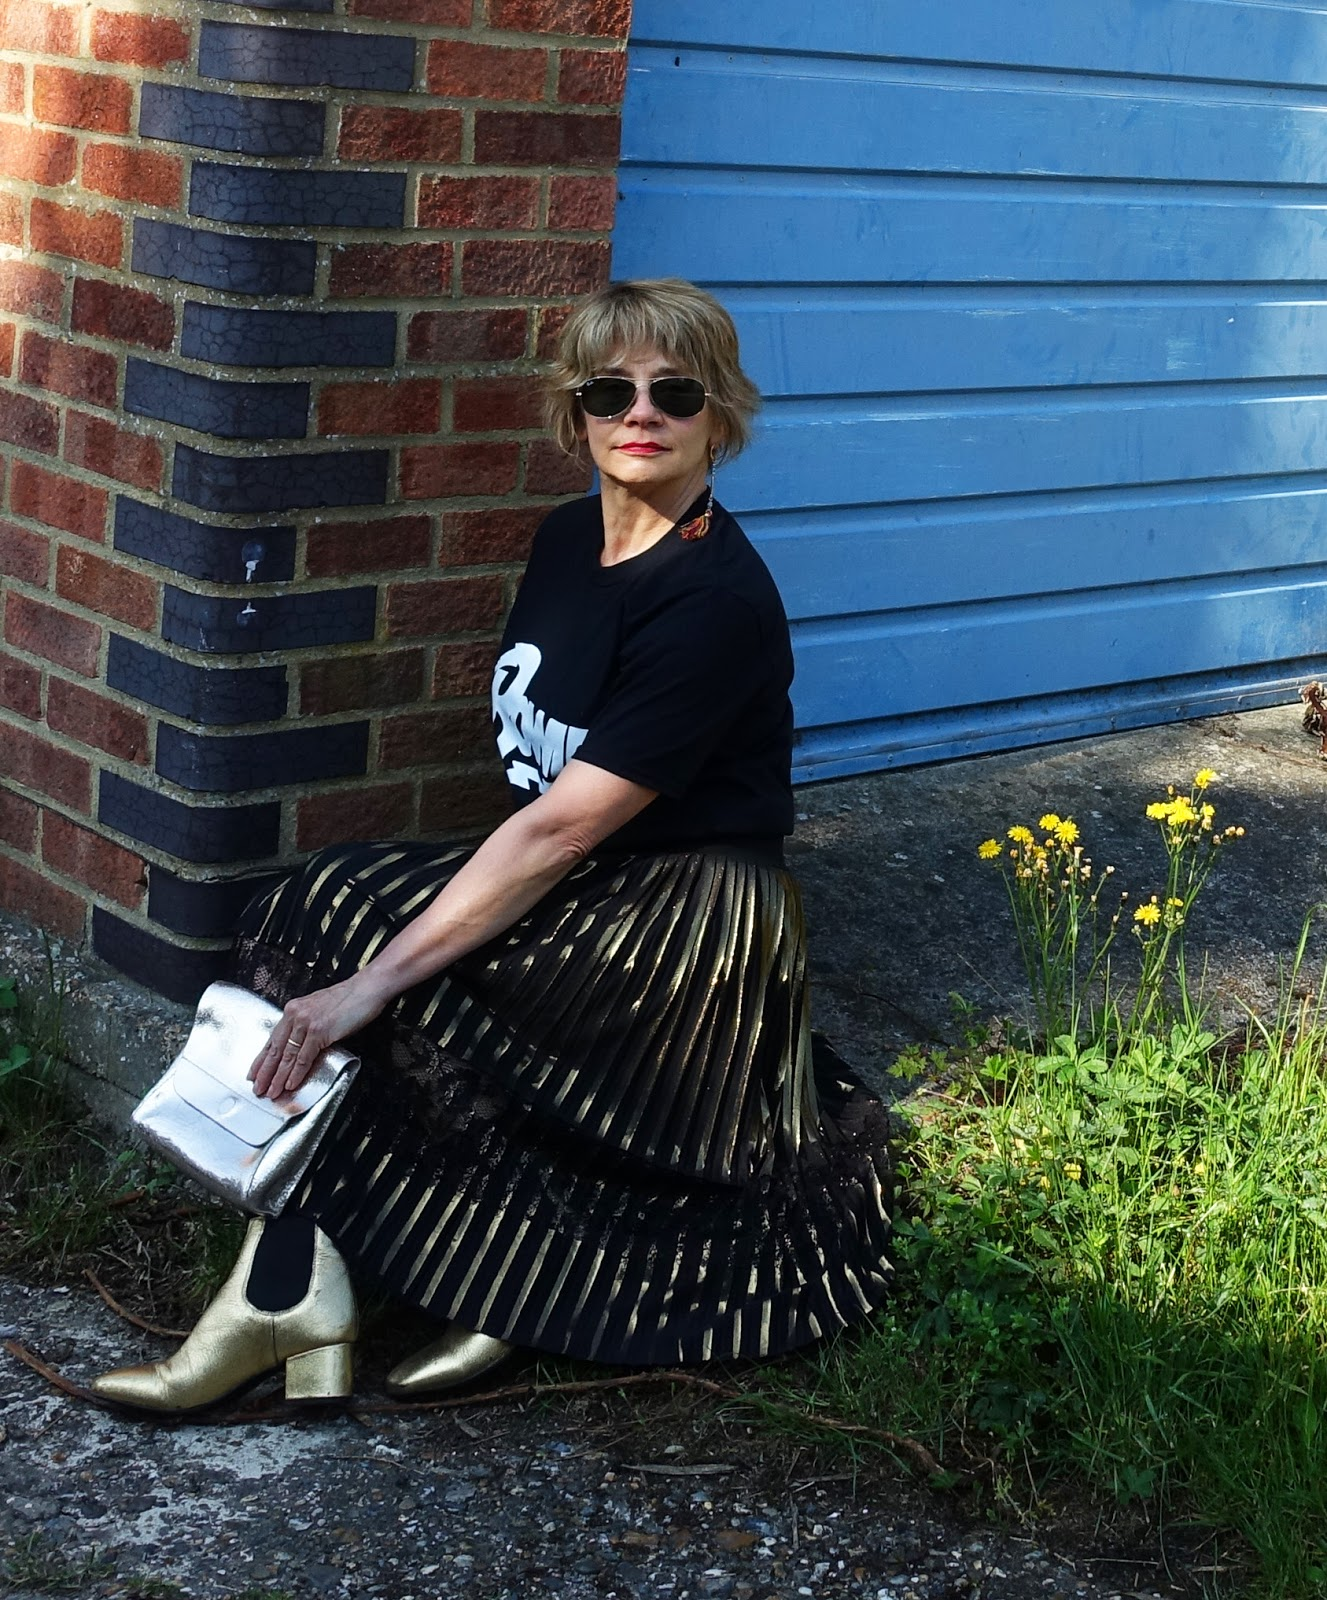 Rock star chic with metallic boots and skirt and Bowie t-shirt